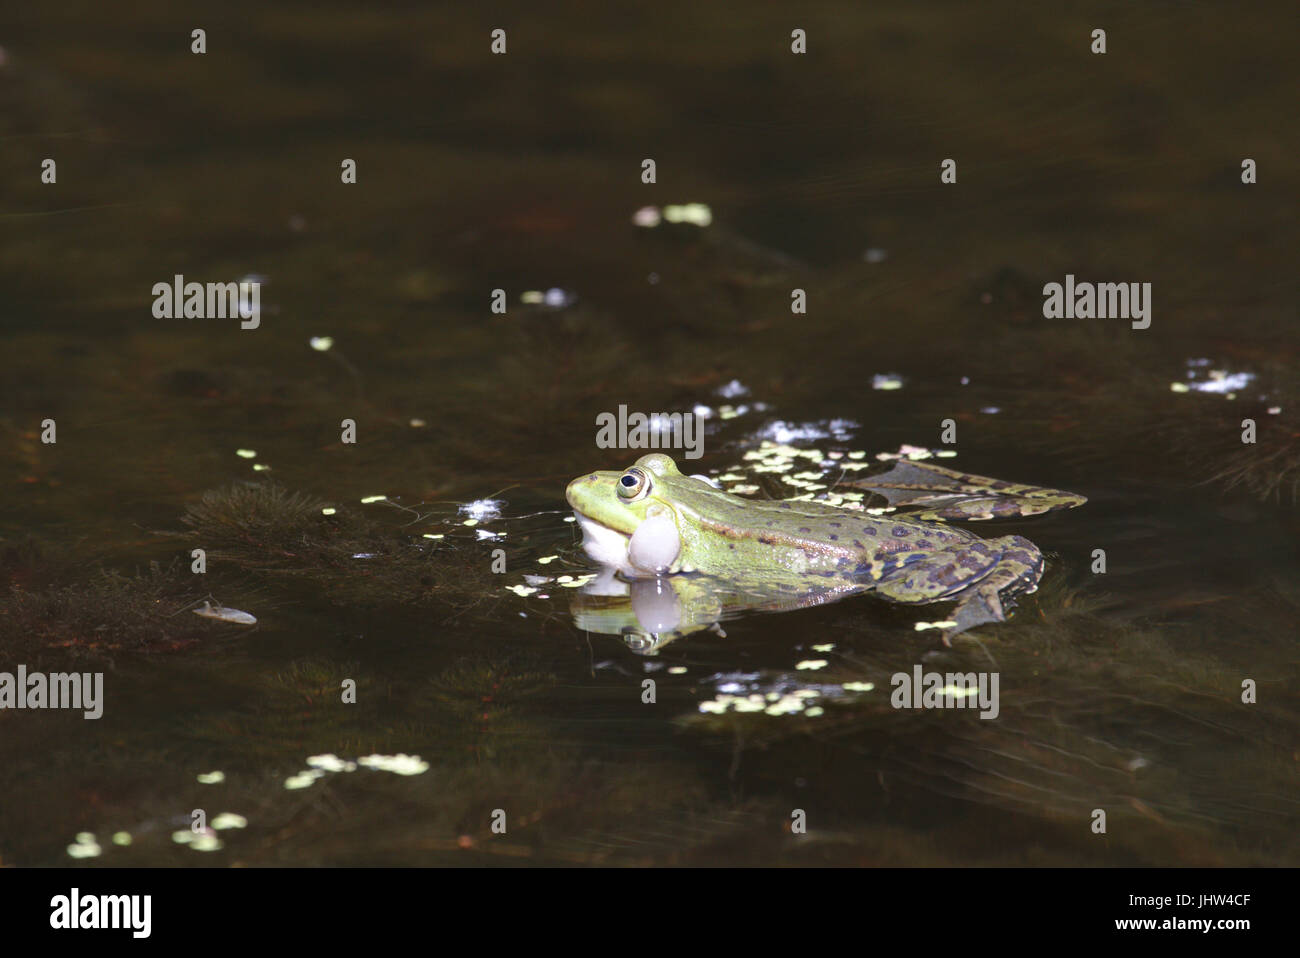 Green frog, possibly Pool frog (Pelophylax lessonae) or Edible frog (Pelophylax kl. esculentus) - Stock Image